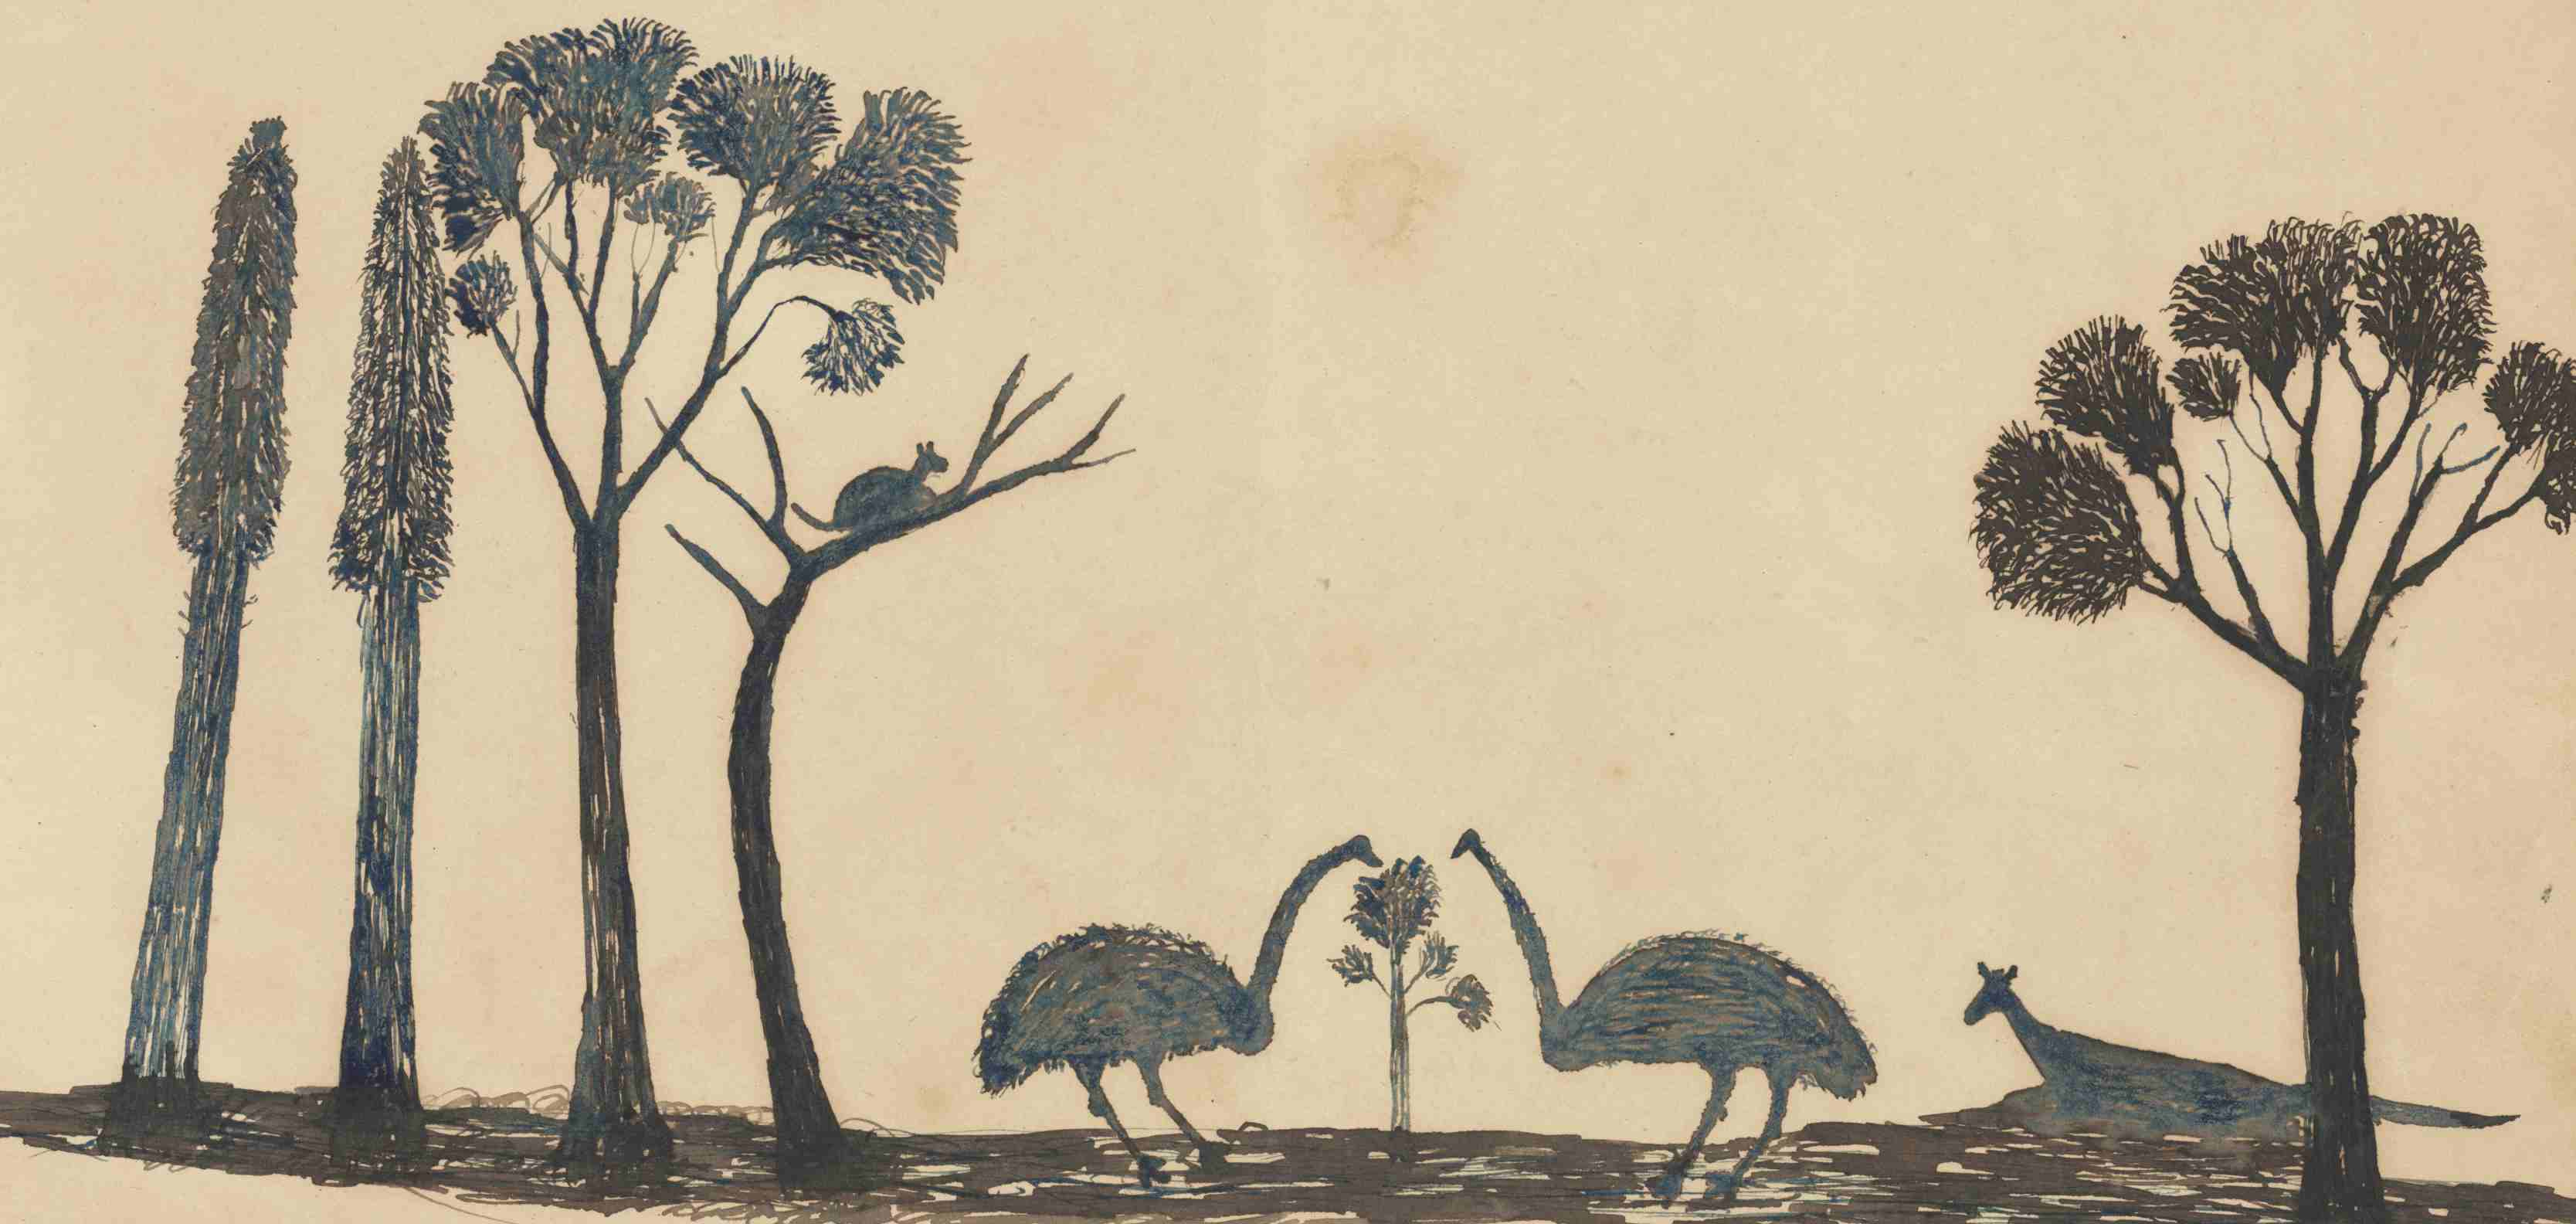 Illustration of two emus, a kangaroo and a possum in the bush